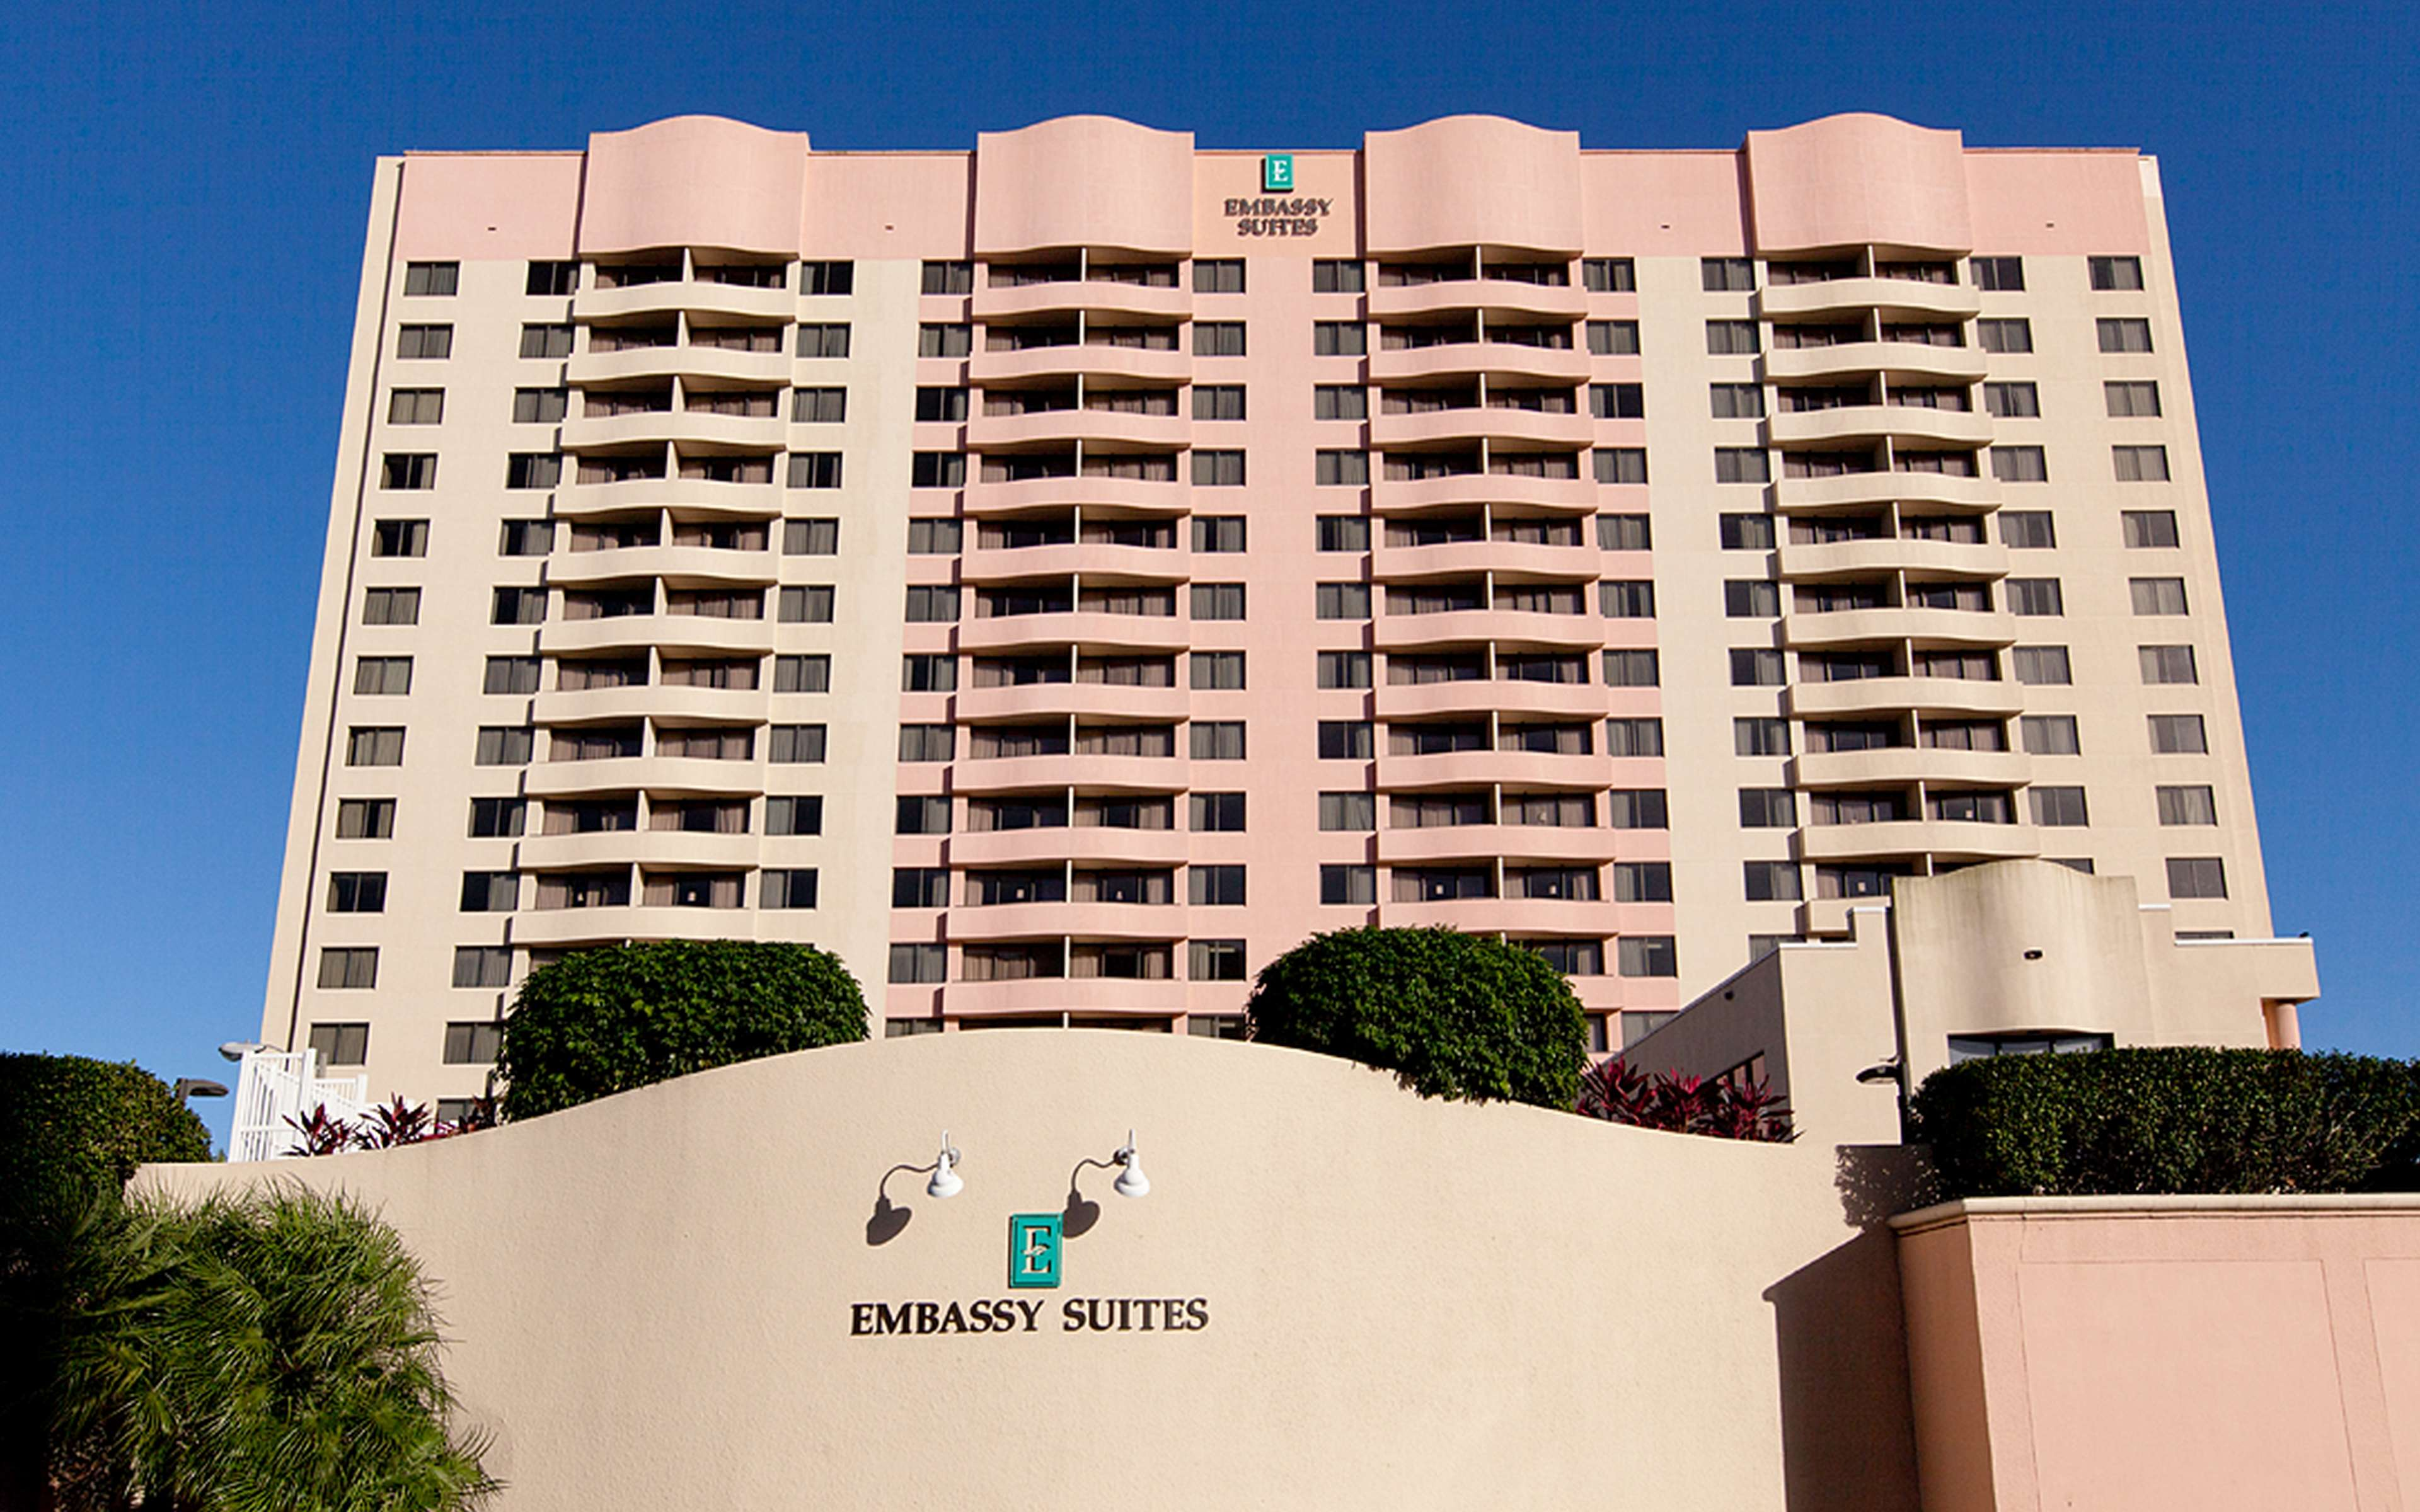 Embassy Suites by Hilton Tampa Airport Westshore image 0